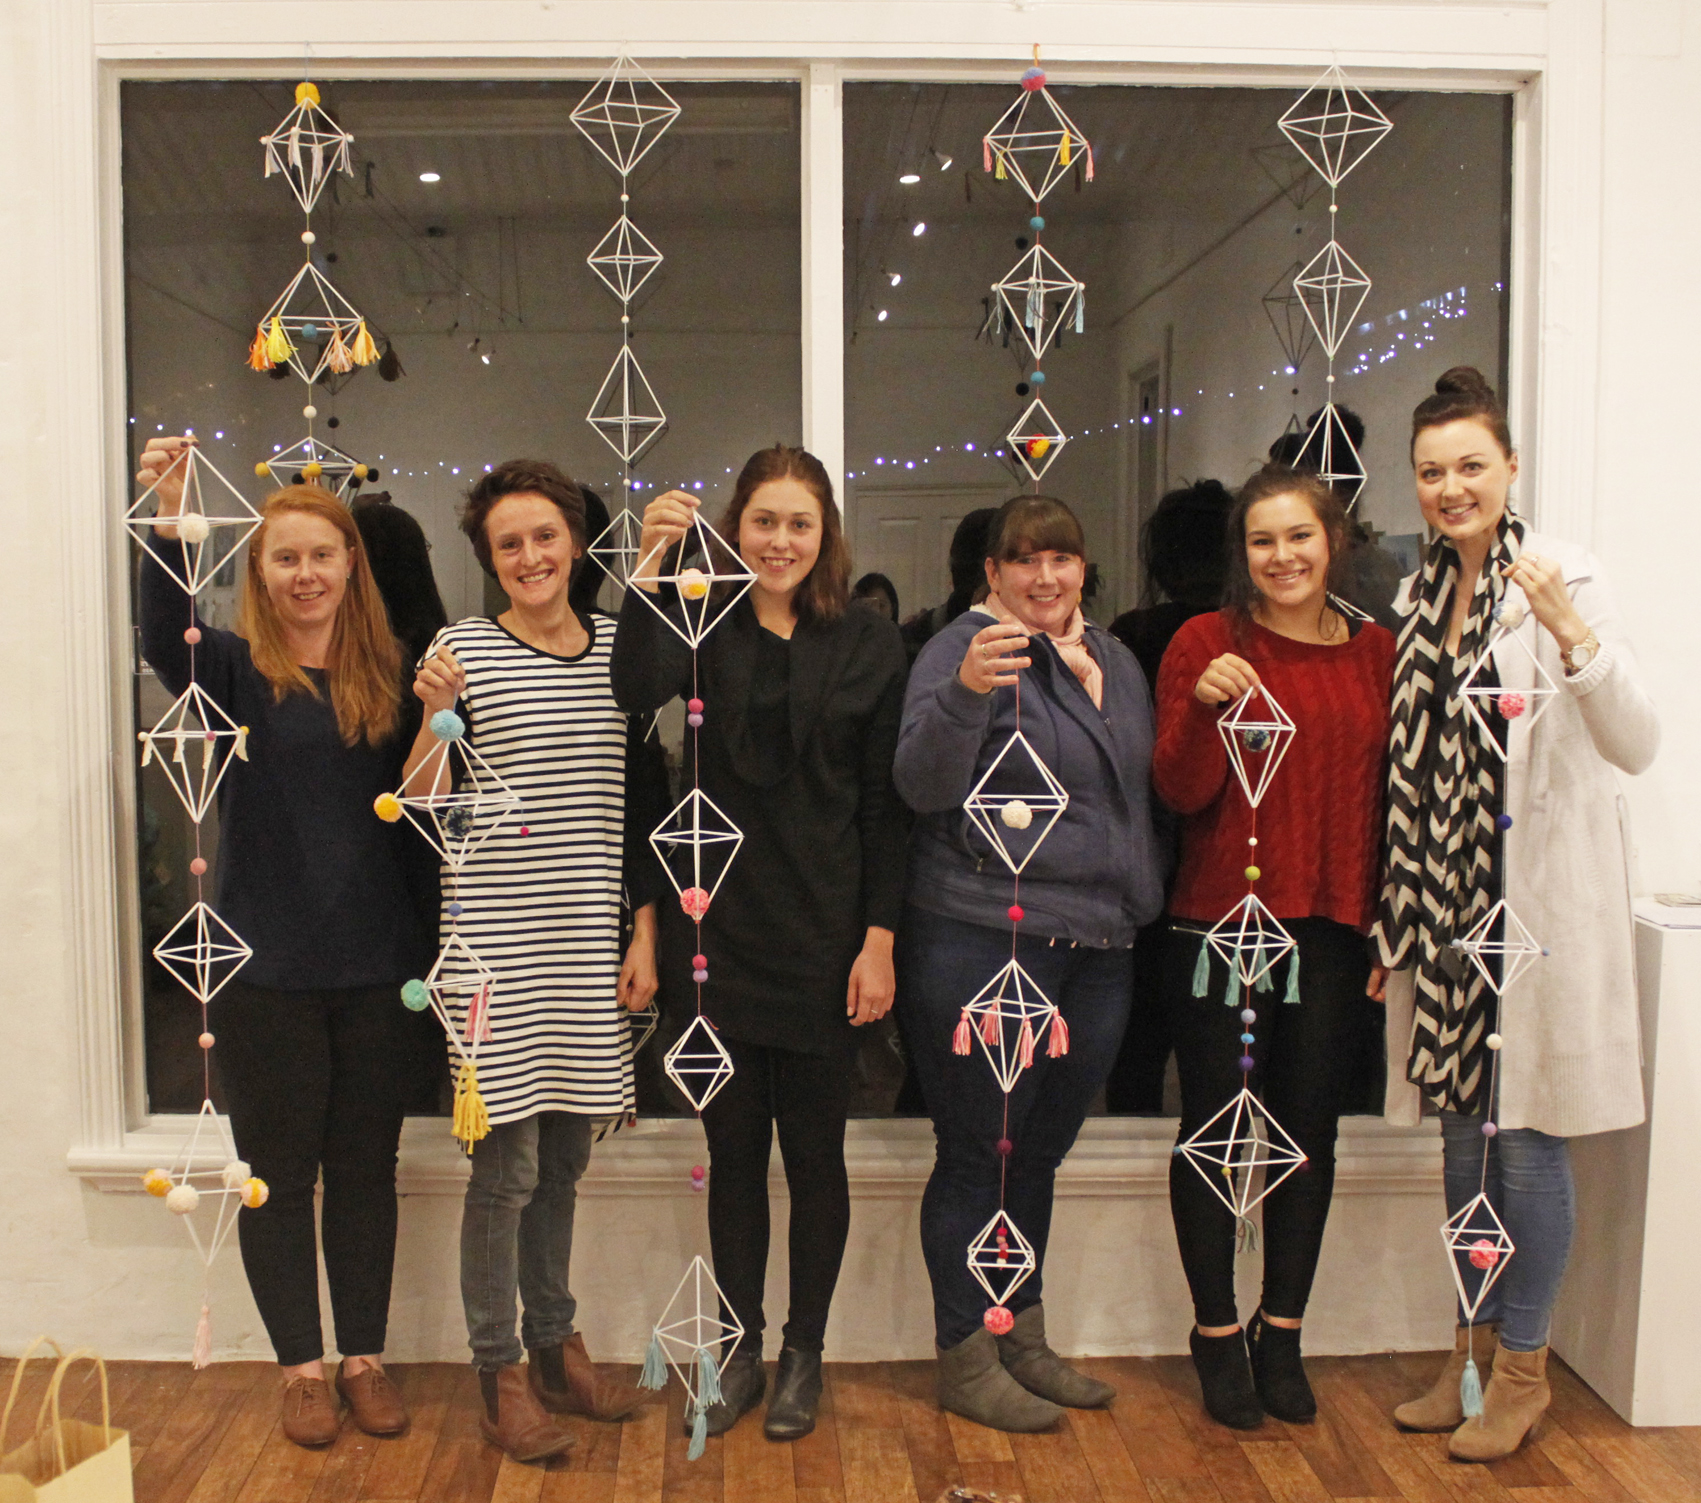 DIY Diamond Garland Workshop with Jacqueline Chan, The Corner Store Gallery